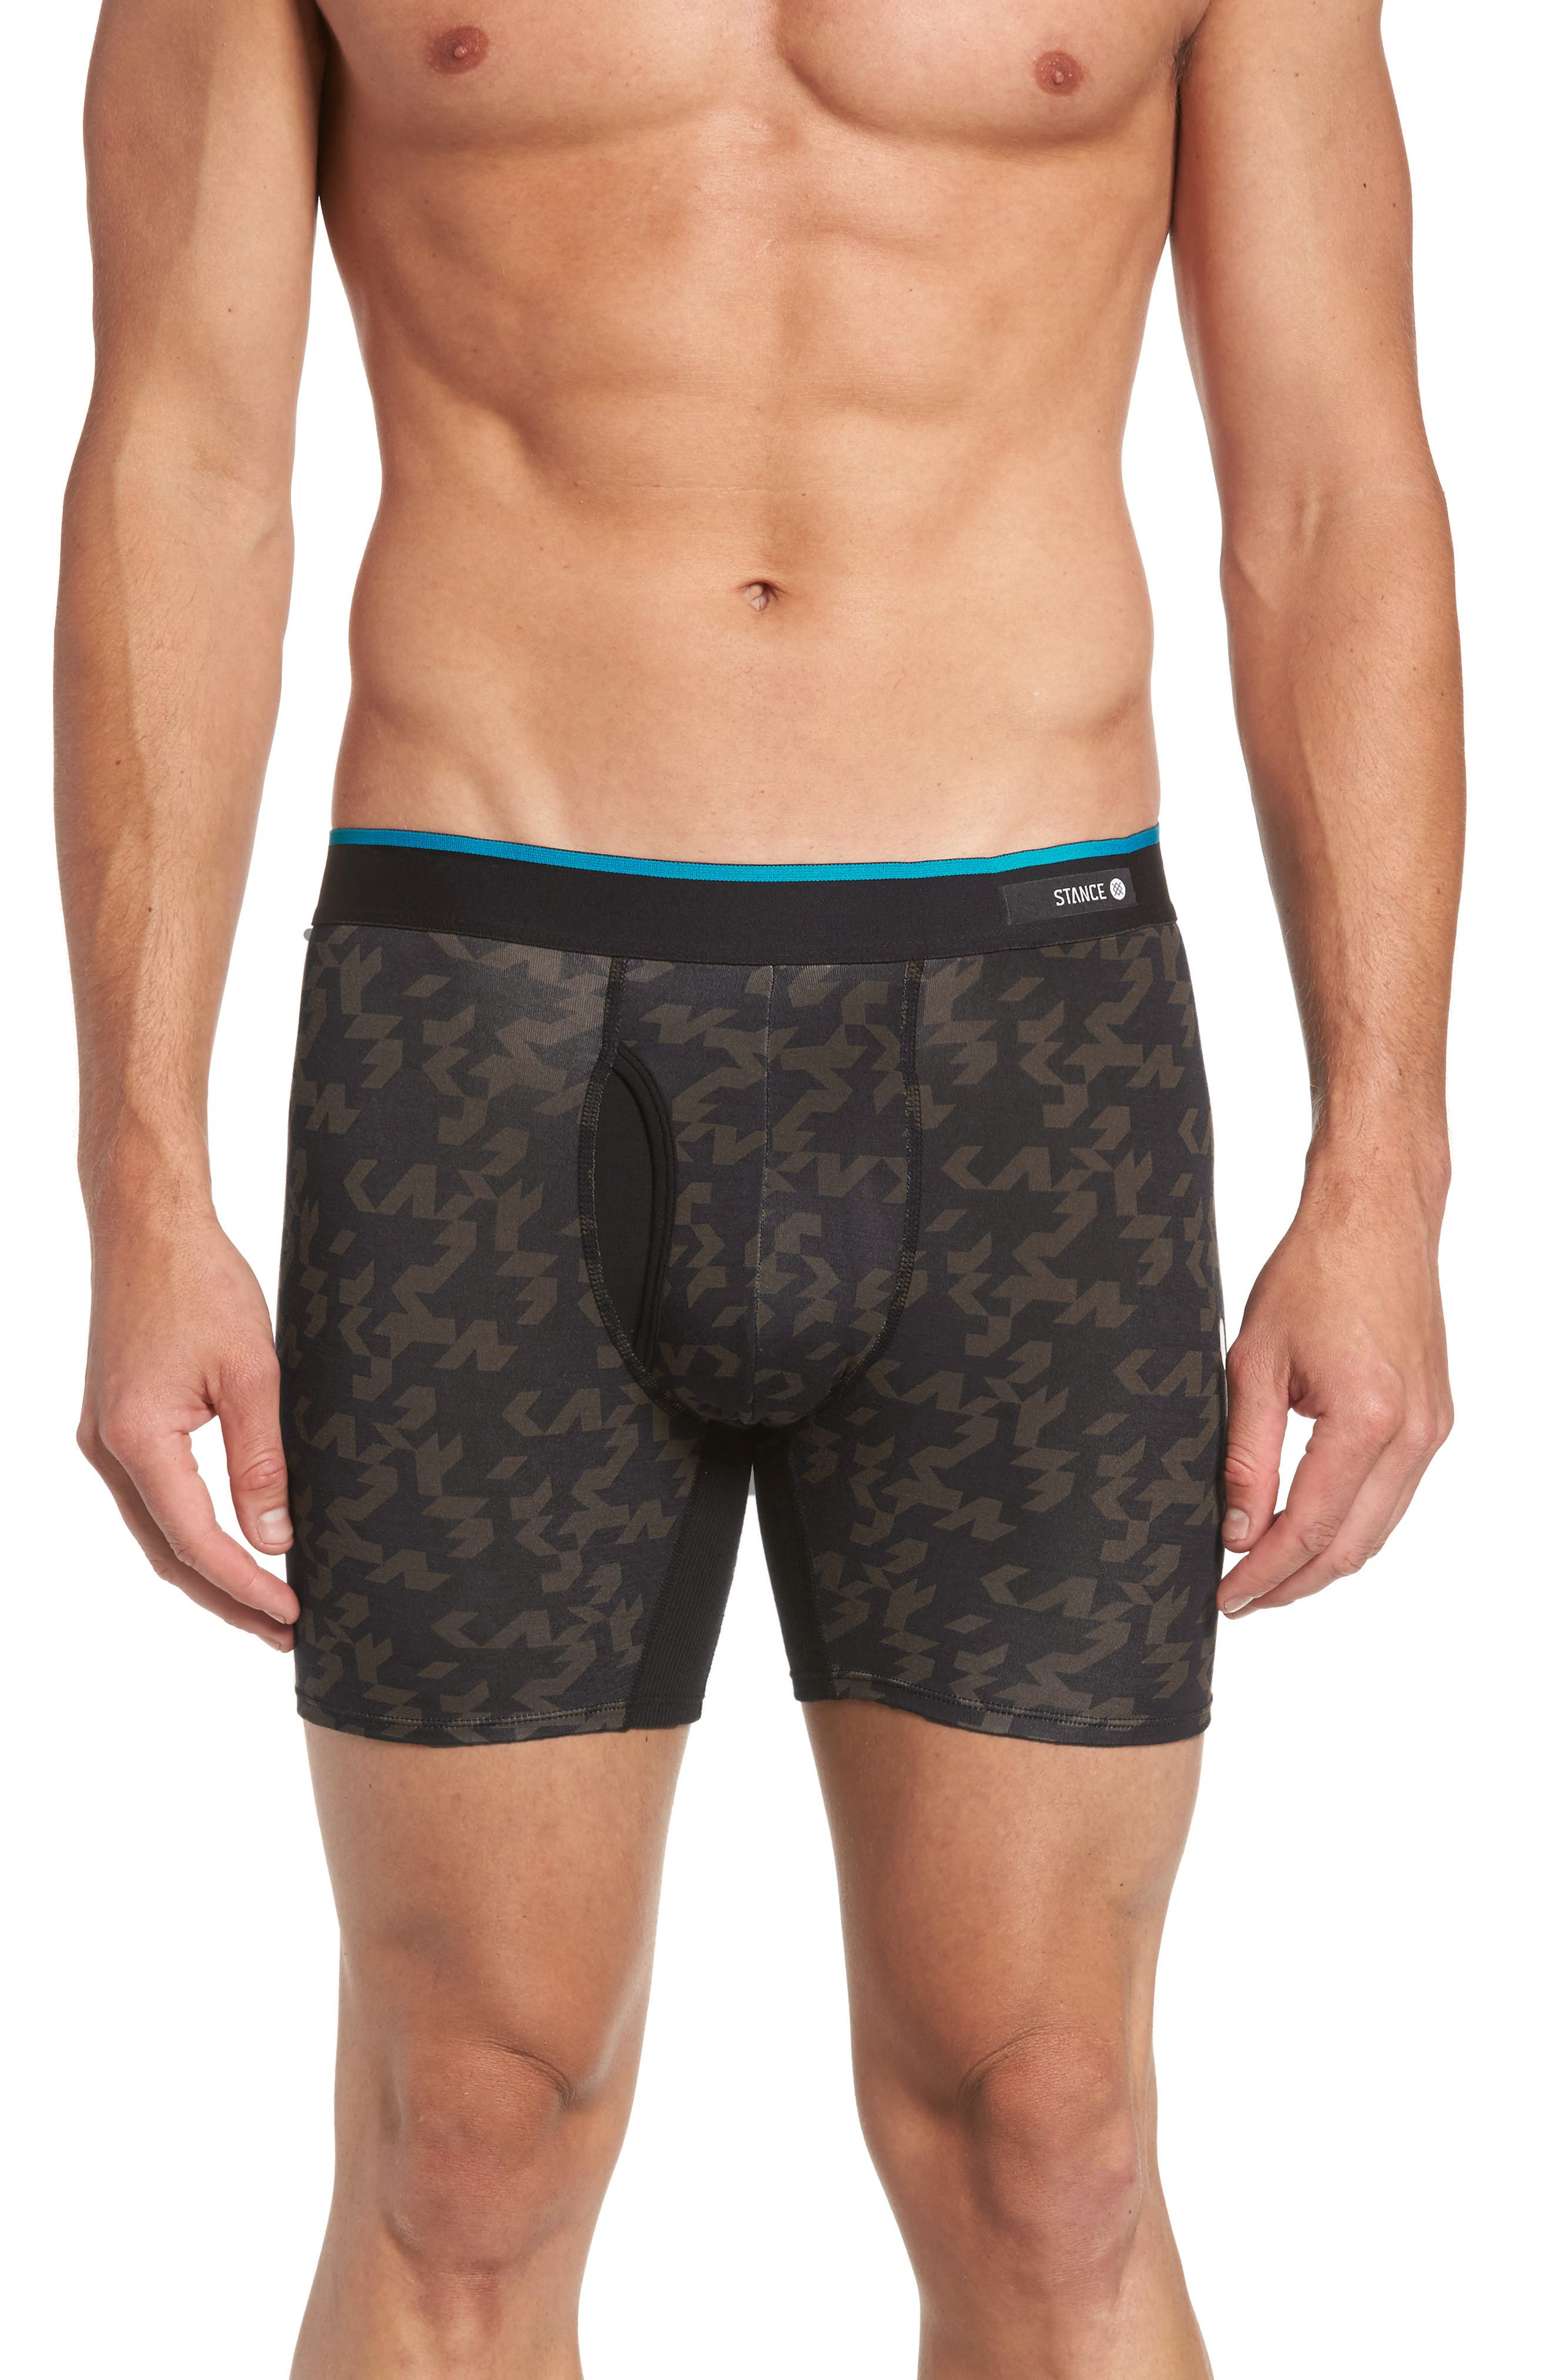 Alternate Image 1 Selected - Stance Bracket Geo Stretch Modal Boxer Brief